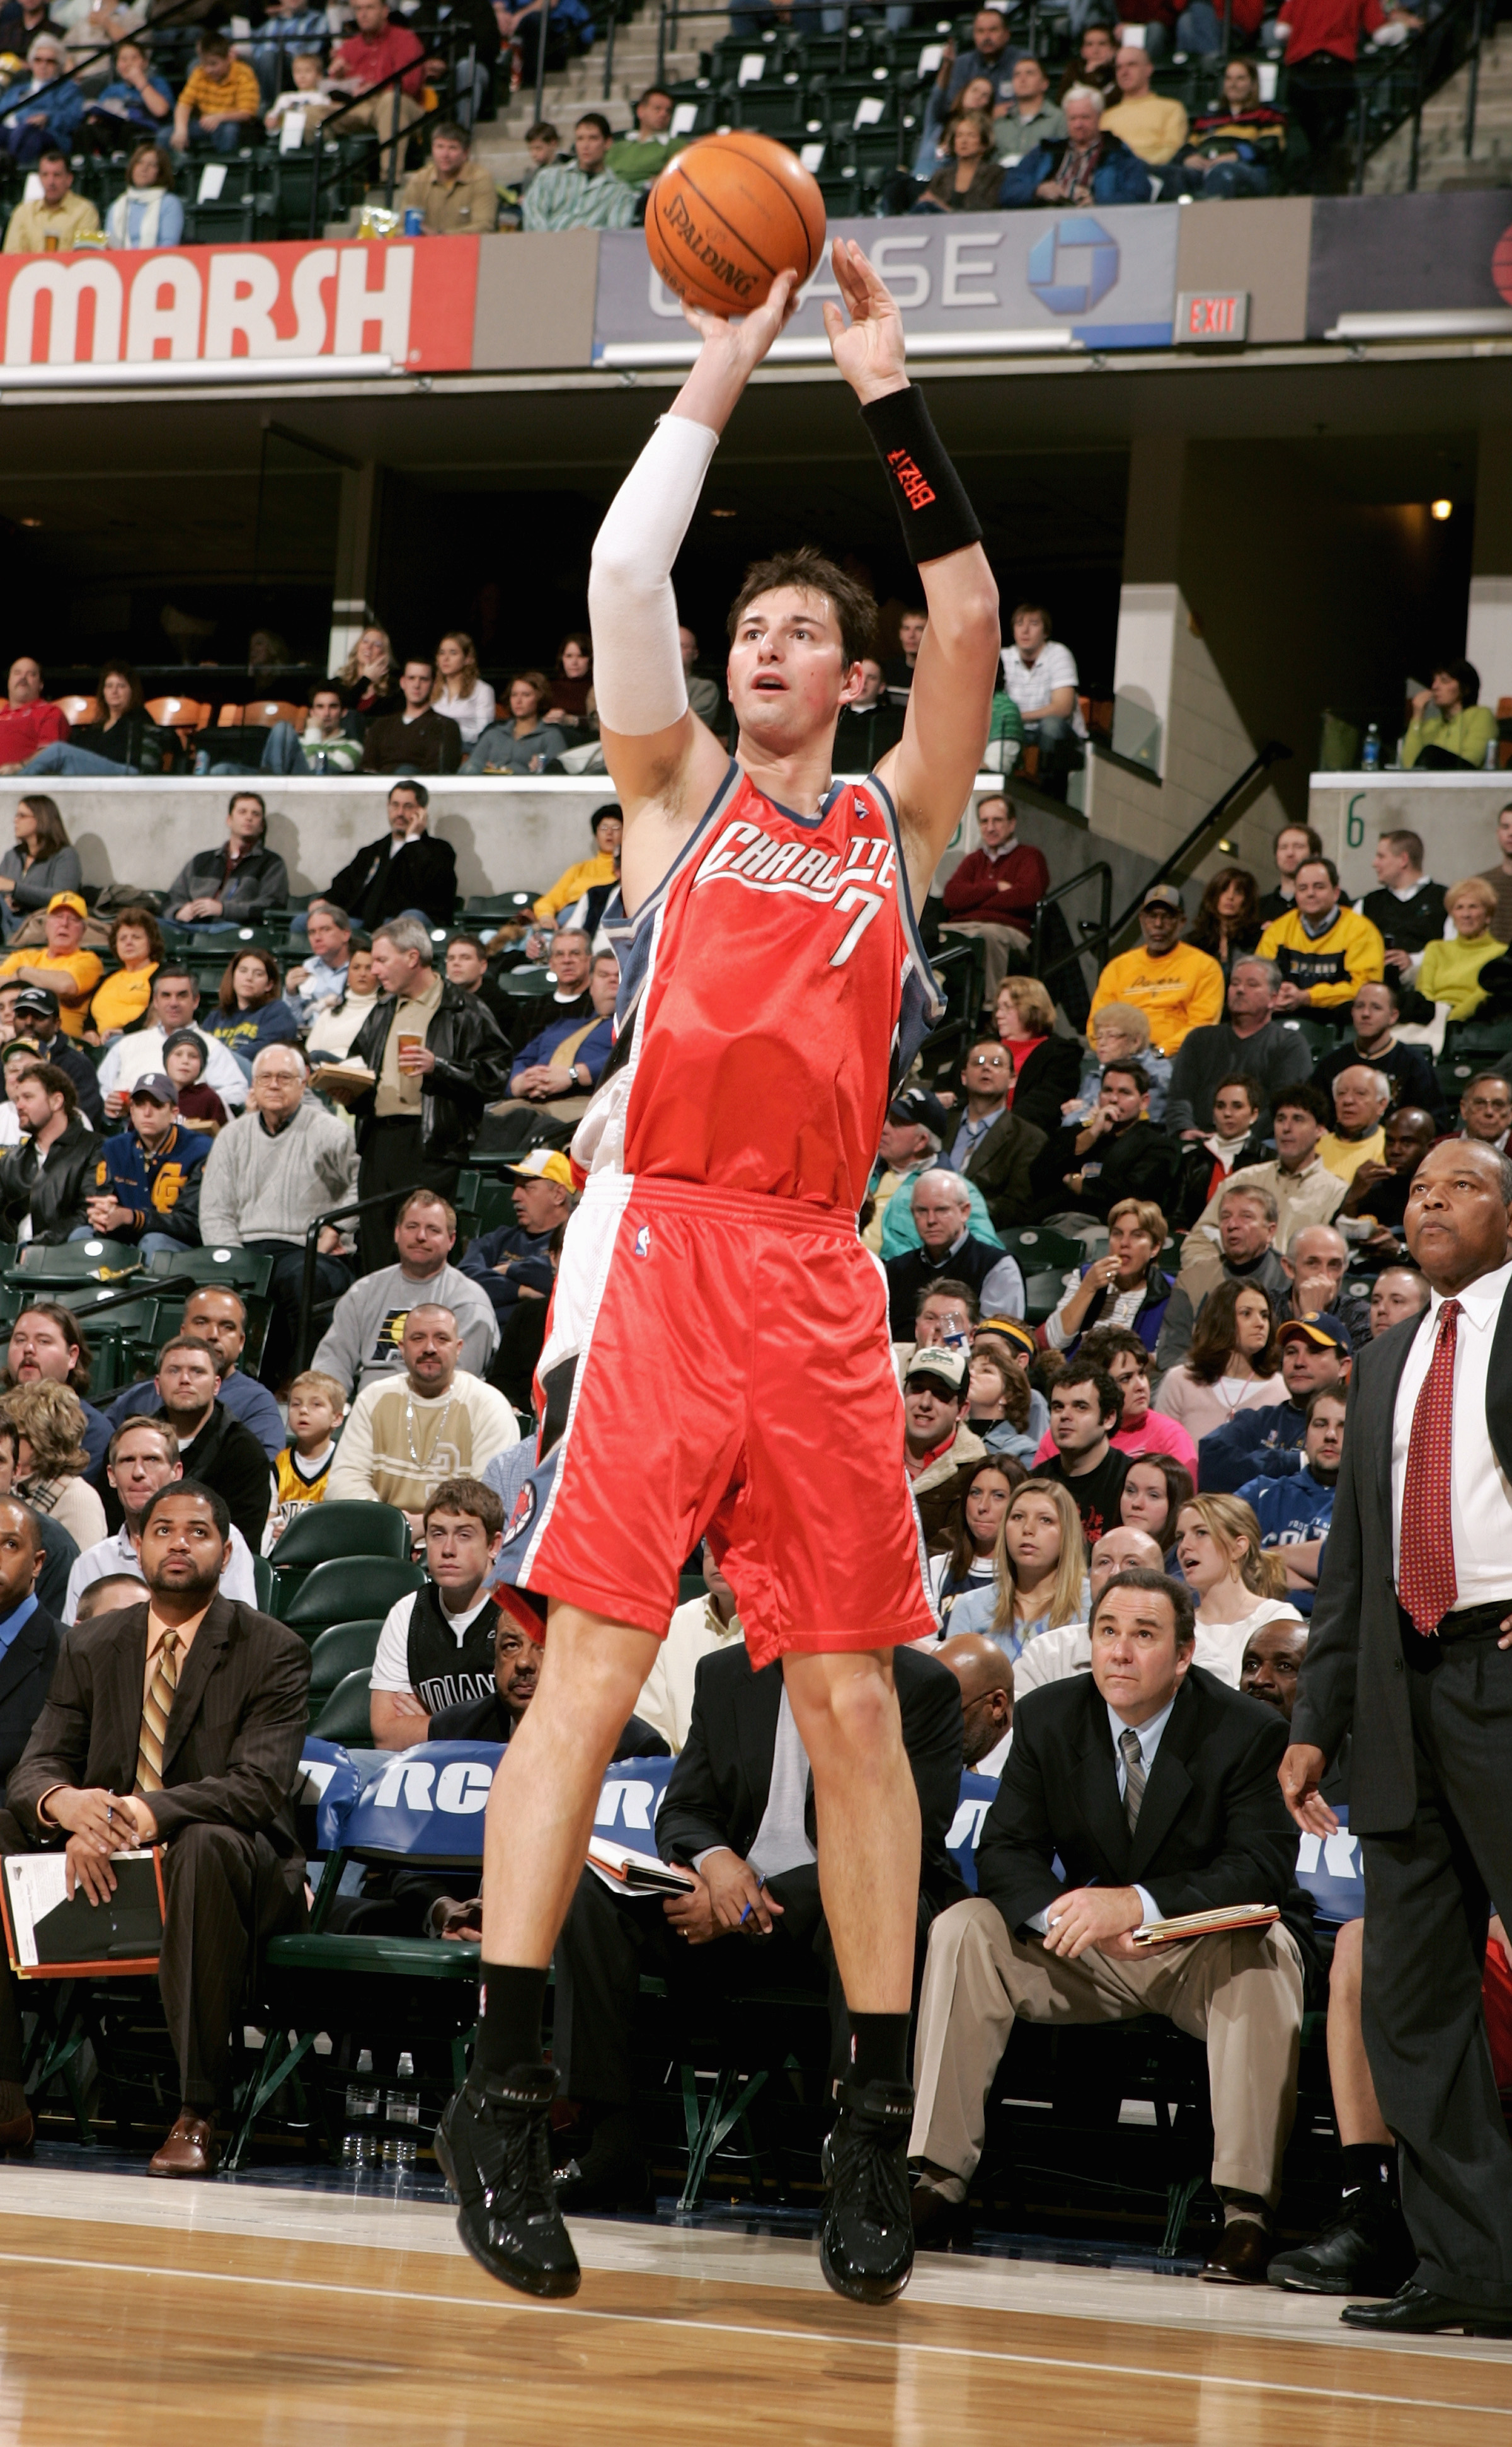 INDIANAPOLIS - JANUARY 18:  Primoz Brezec #7 of the Charlotte Bobcats takes a jump shot  during the game with the Indiana Pacers on January 18, 2006 at Conseco Fieldhouse in Indianapolis, Indiana. The Pacers defeated the Bobcats 98-92. NOTE TO USER: User